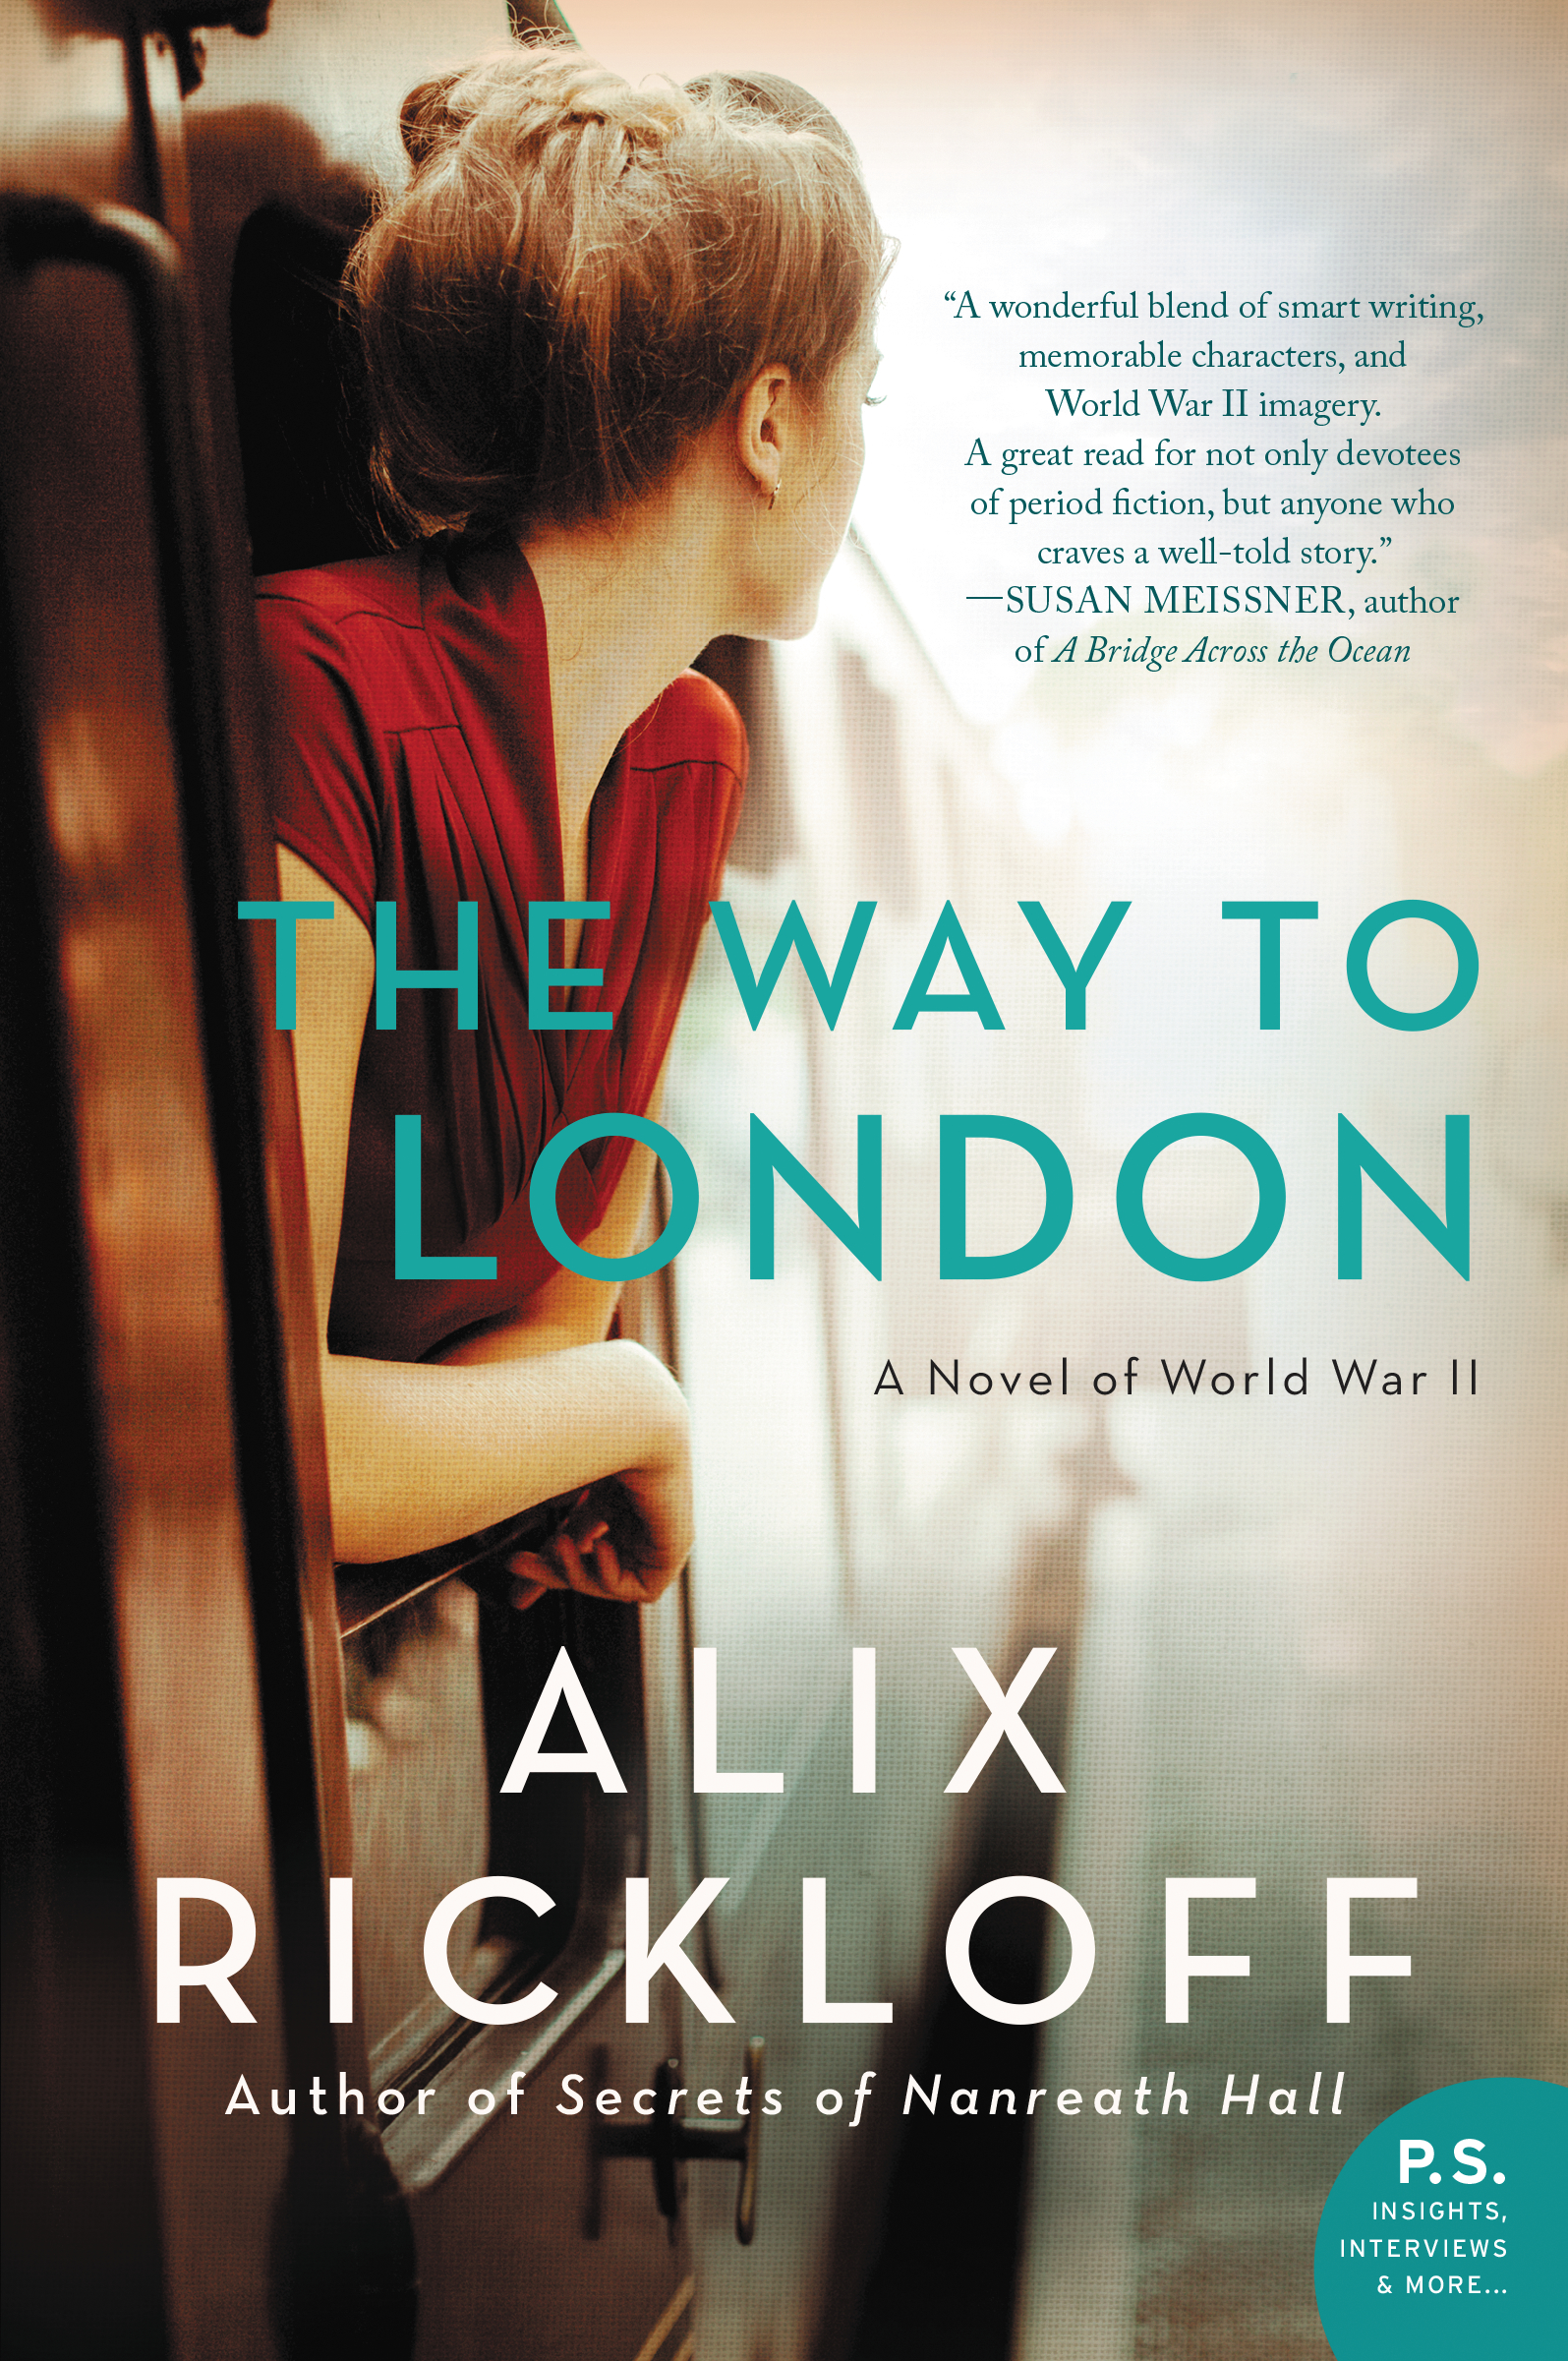 The Way to London: A Novel of World War II by Alix Rickloff